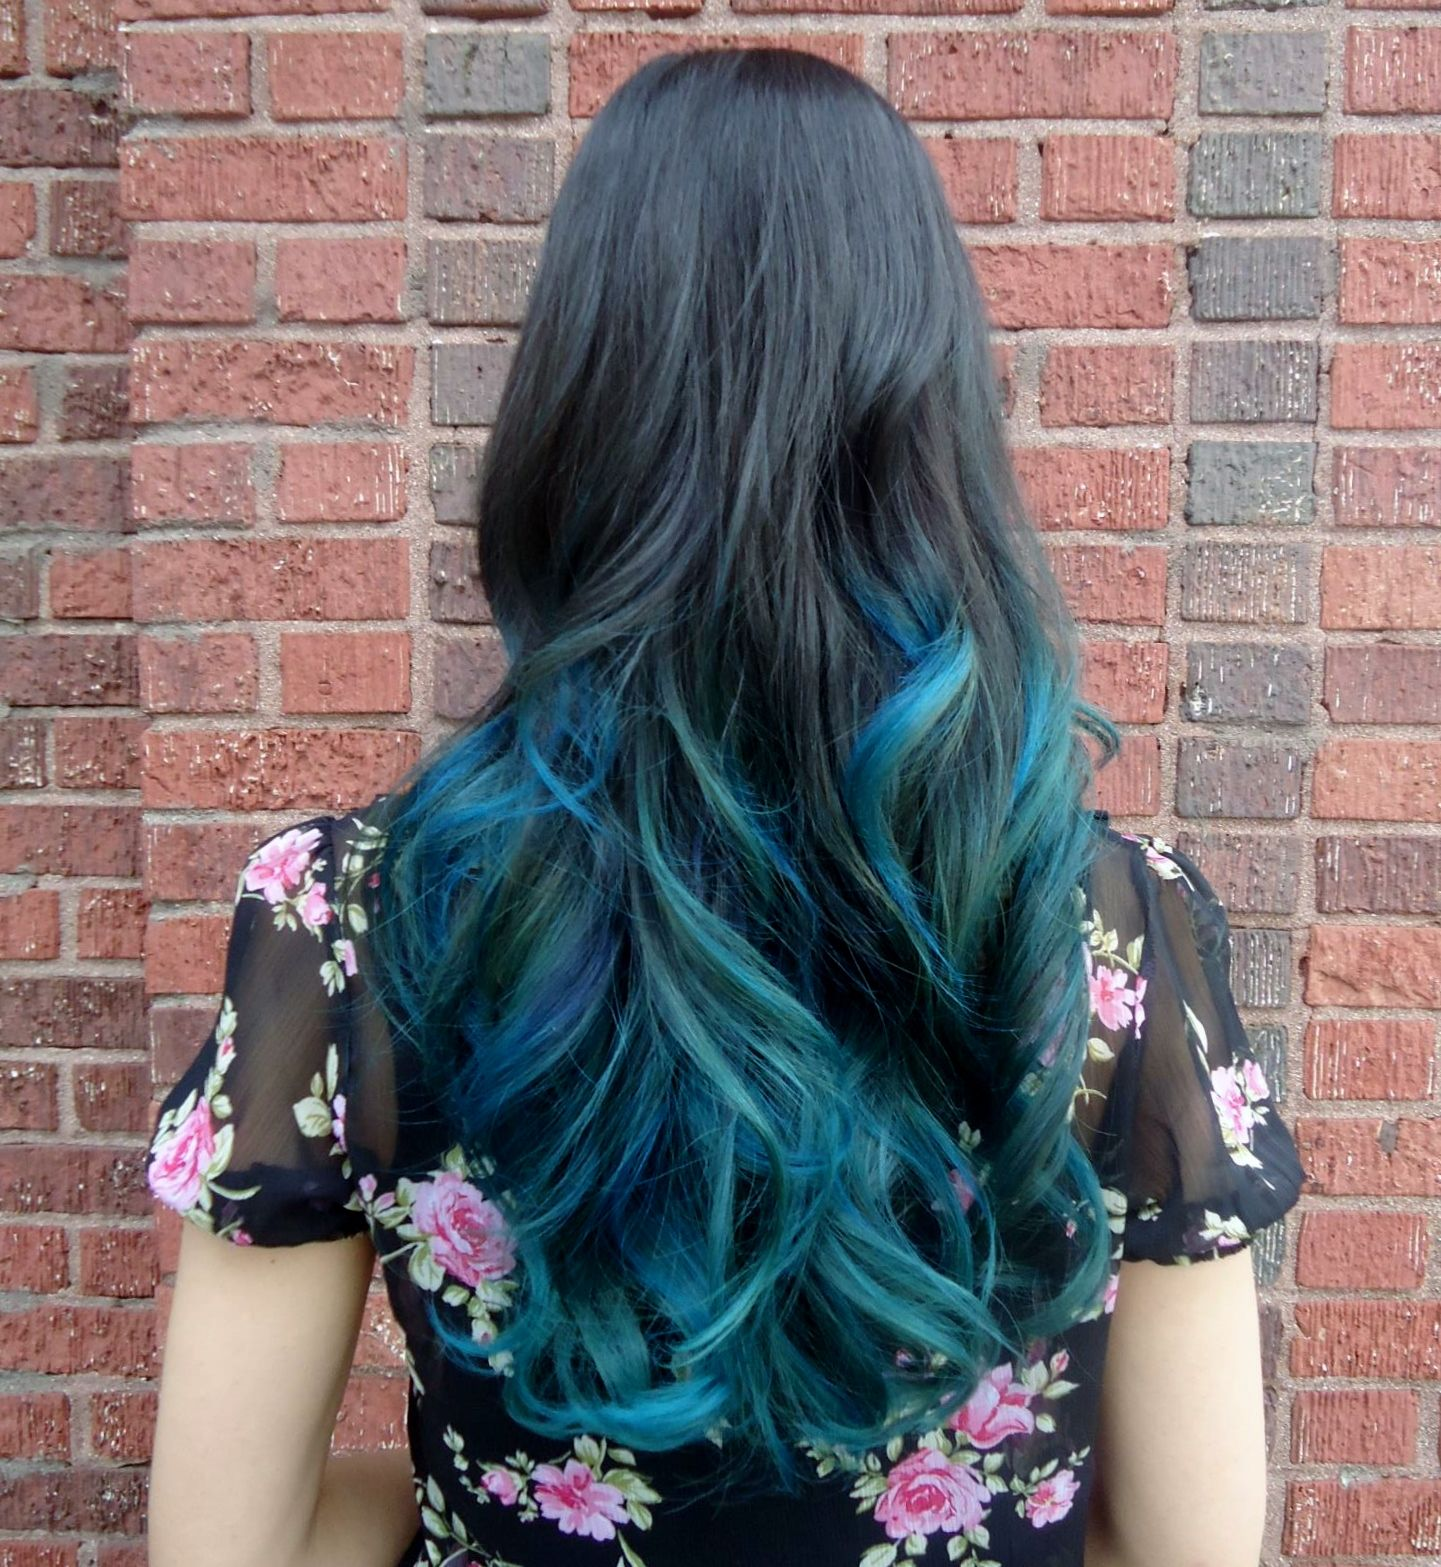 Dark Hair With Teal Dip Dye With Images Blue Ombre Hair Teal